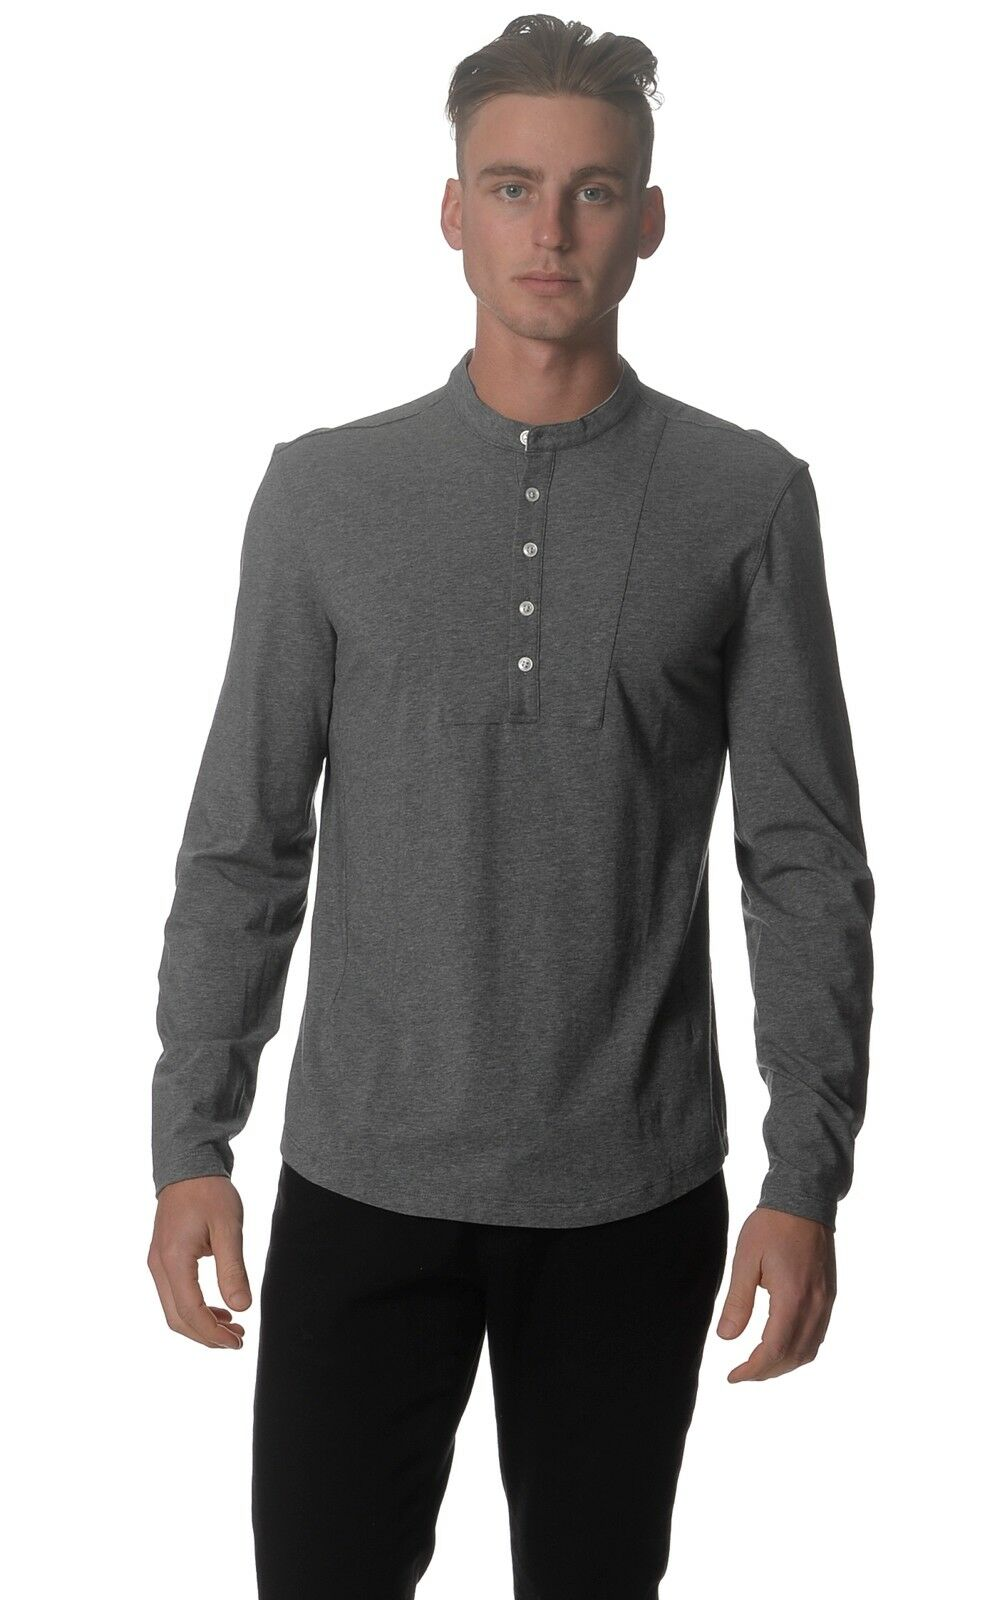 Kit and Ace Mens Logan Grey Long Sleeve Cashmere Mix Top Jumper S M